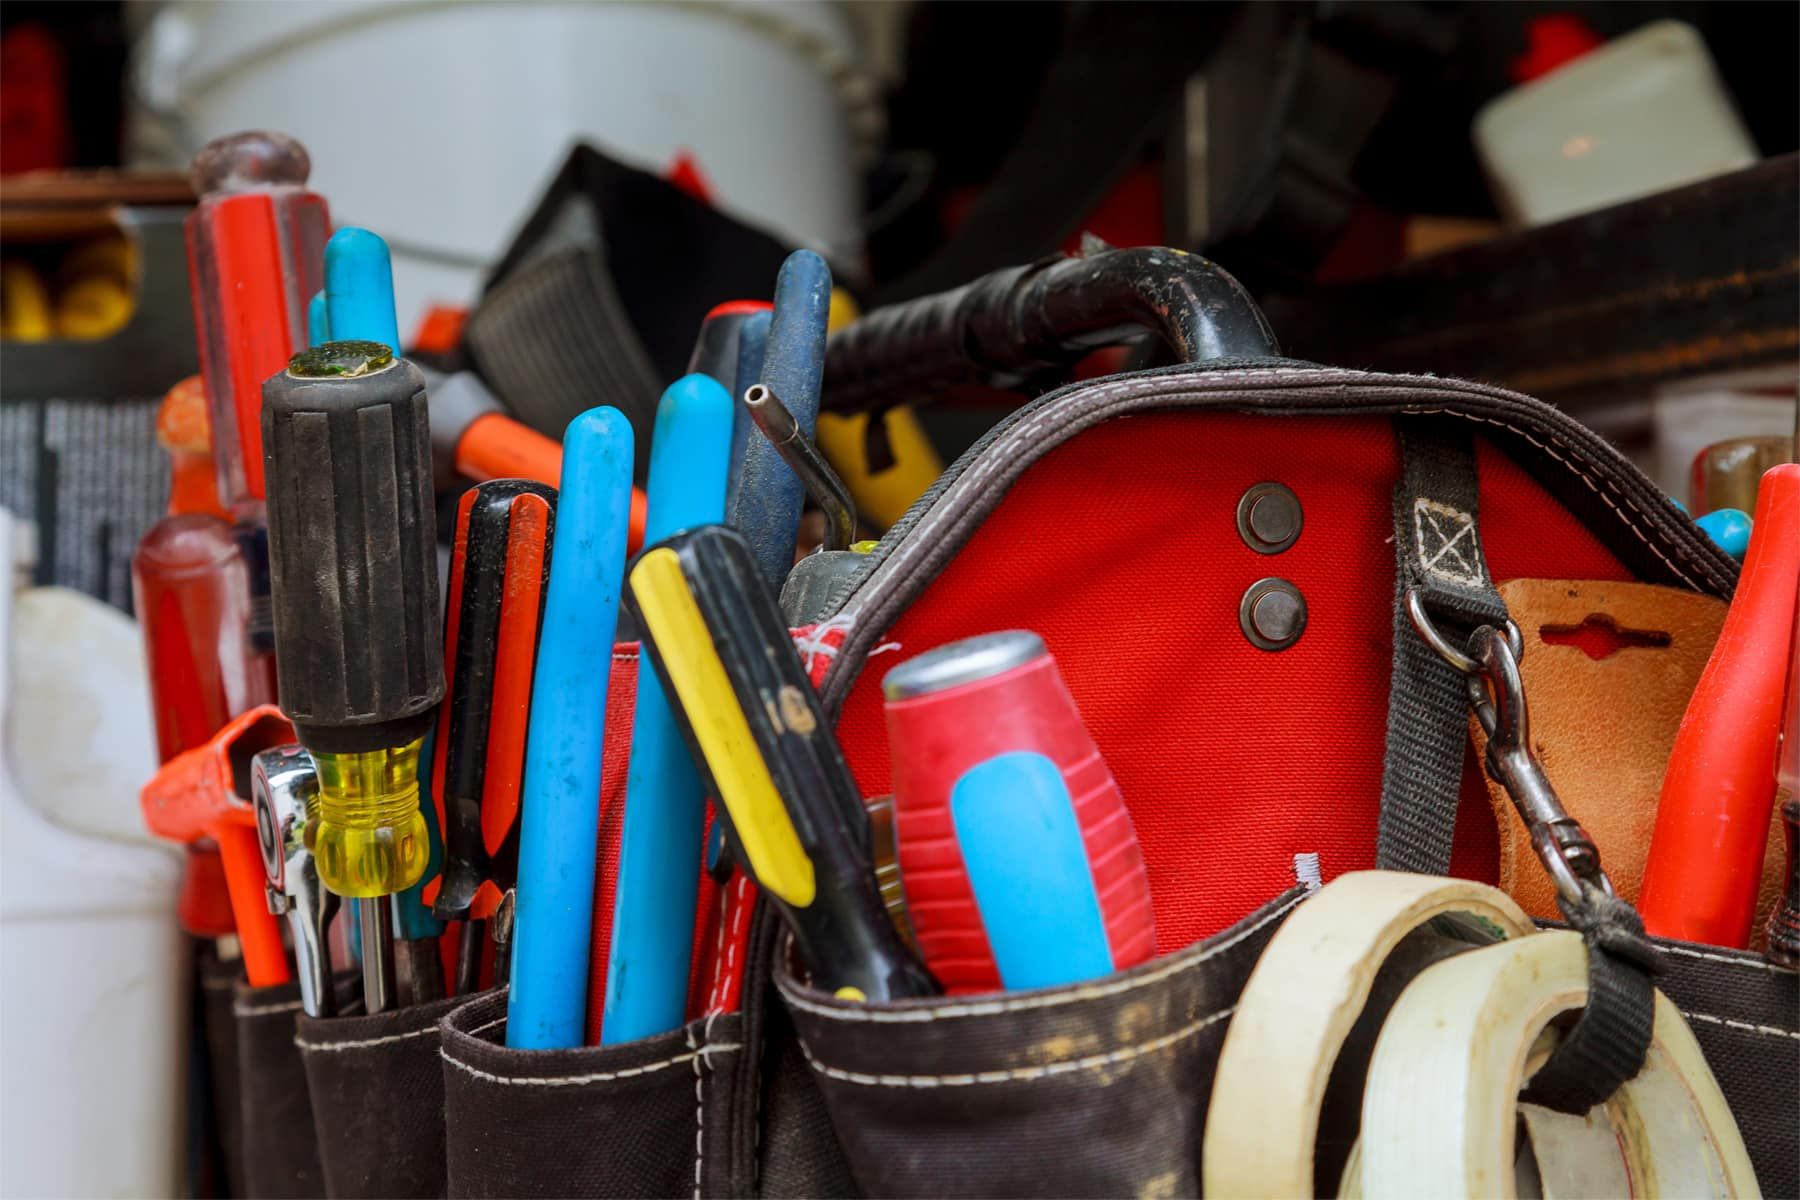 This is the cover photo for our Best Tool Bag article. It features a red tool bag full of tools.